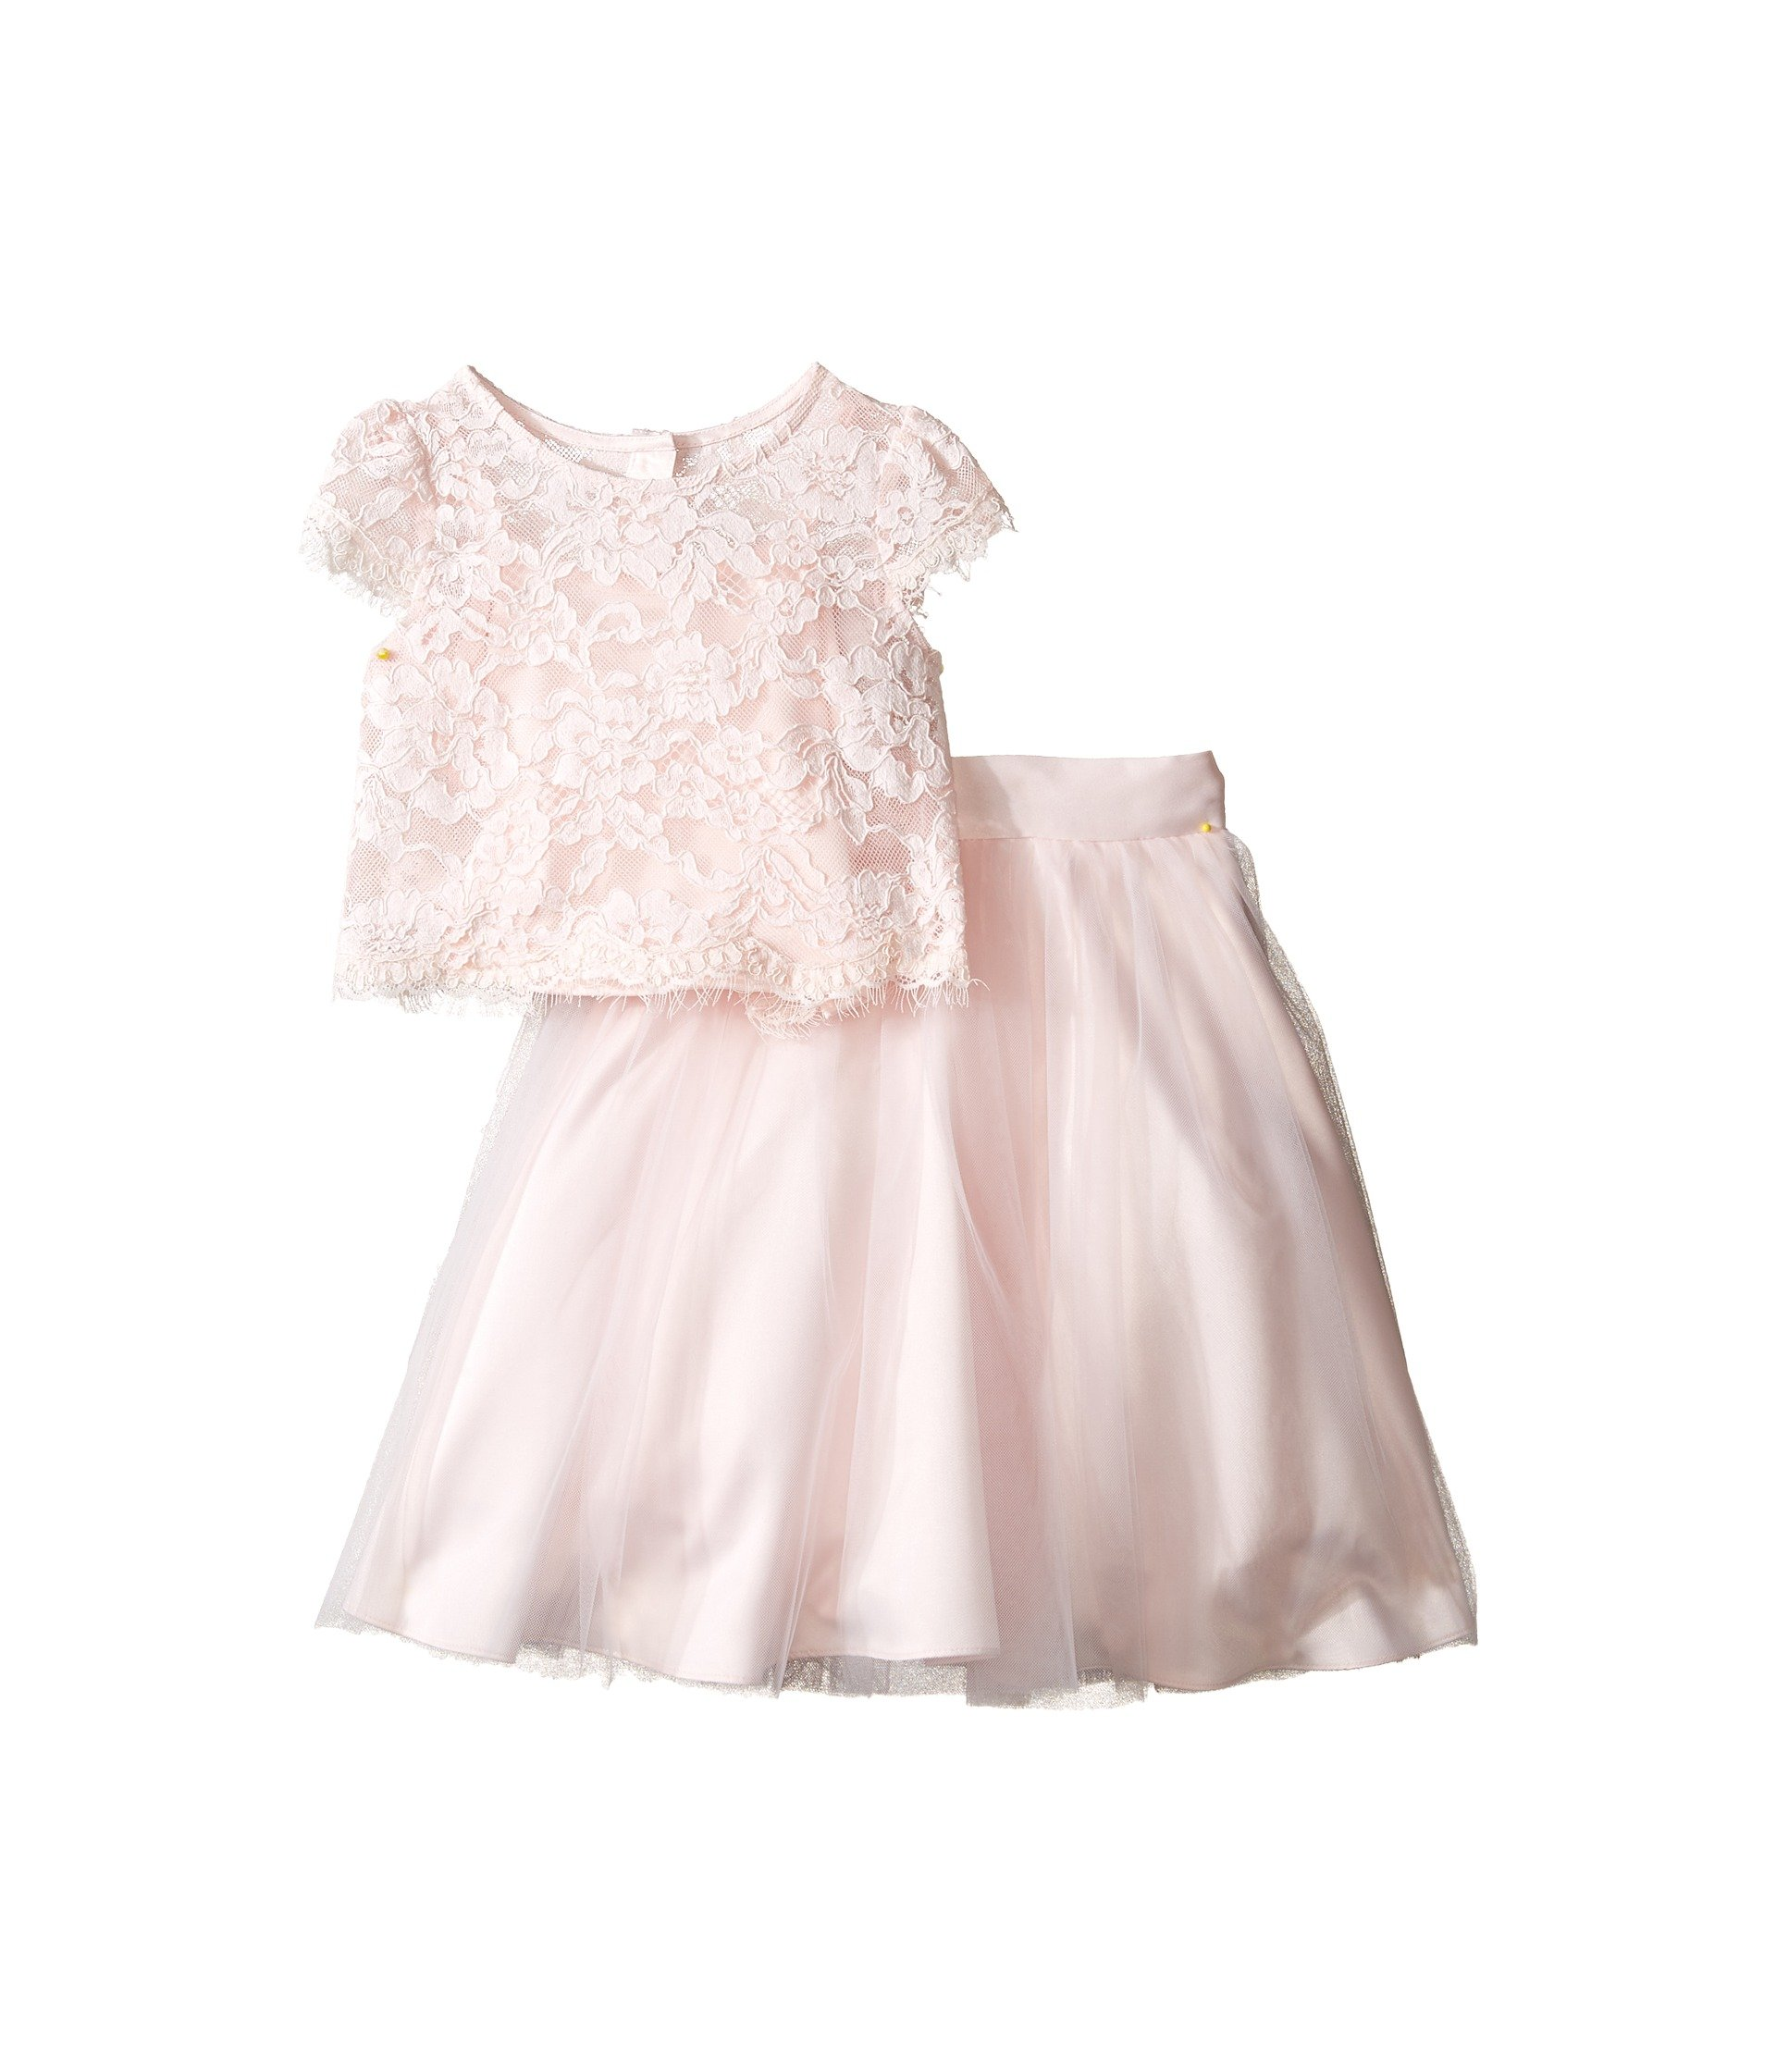 Us Angels Little Girls' 2pc Lace Top and Tulle Skirt, Blush, 4